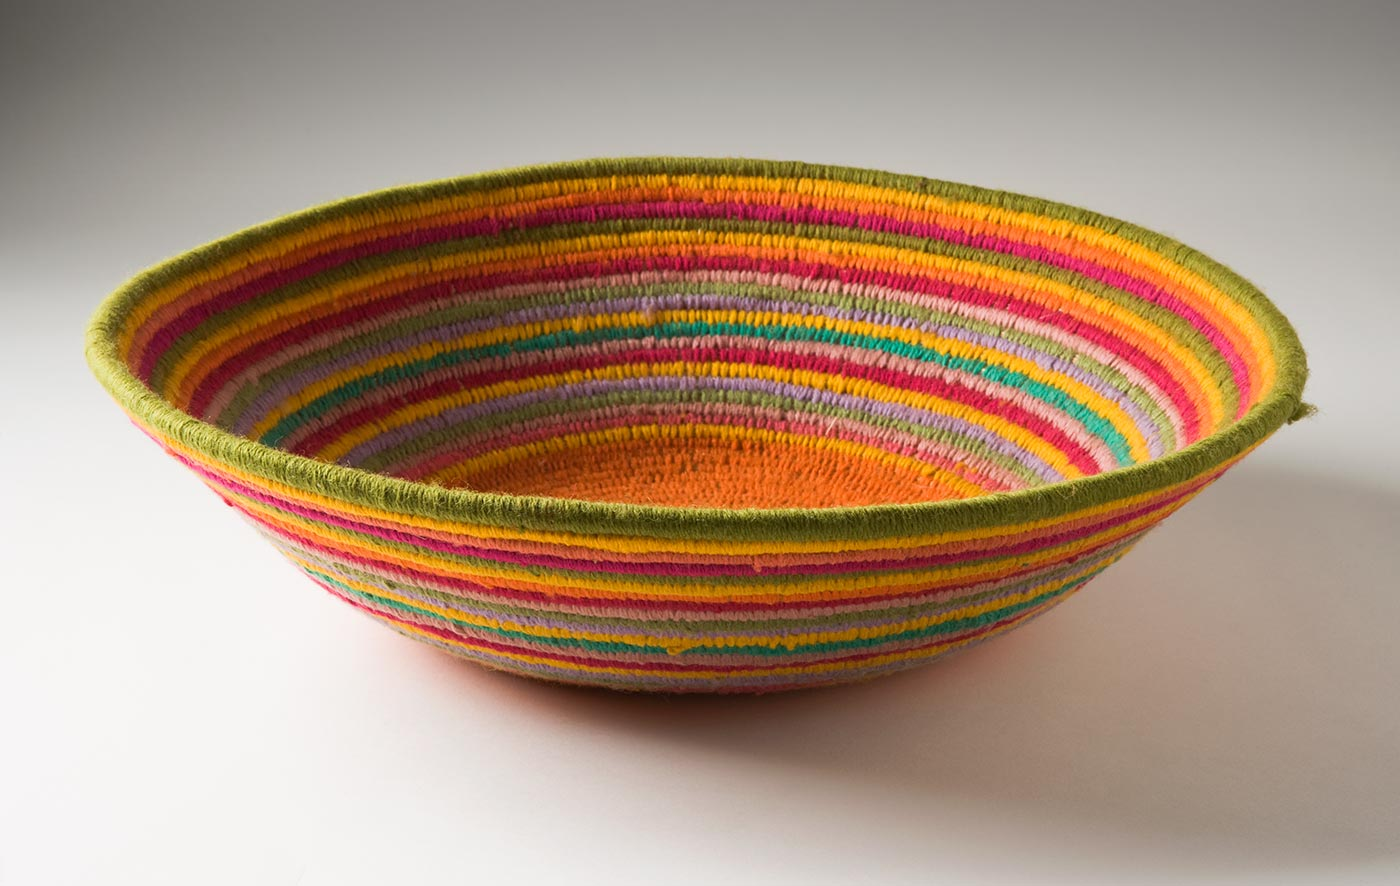 A multi-coloured circular coiled bowl-shaped basket made of yarn and plant fibre. The centre of the basket is in orange yarn which persists out to where the edges start to turn up. The rest of the basket is in horizontal stripes of yellow, dark pink, light pink, lime green and lavender yarn. - click to view larger image